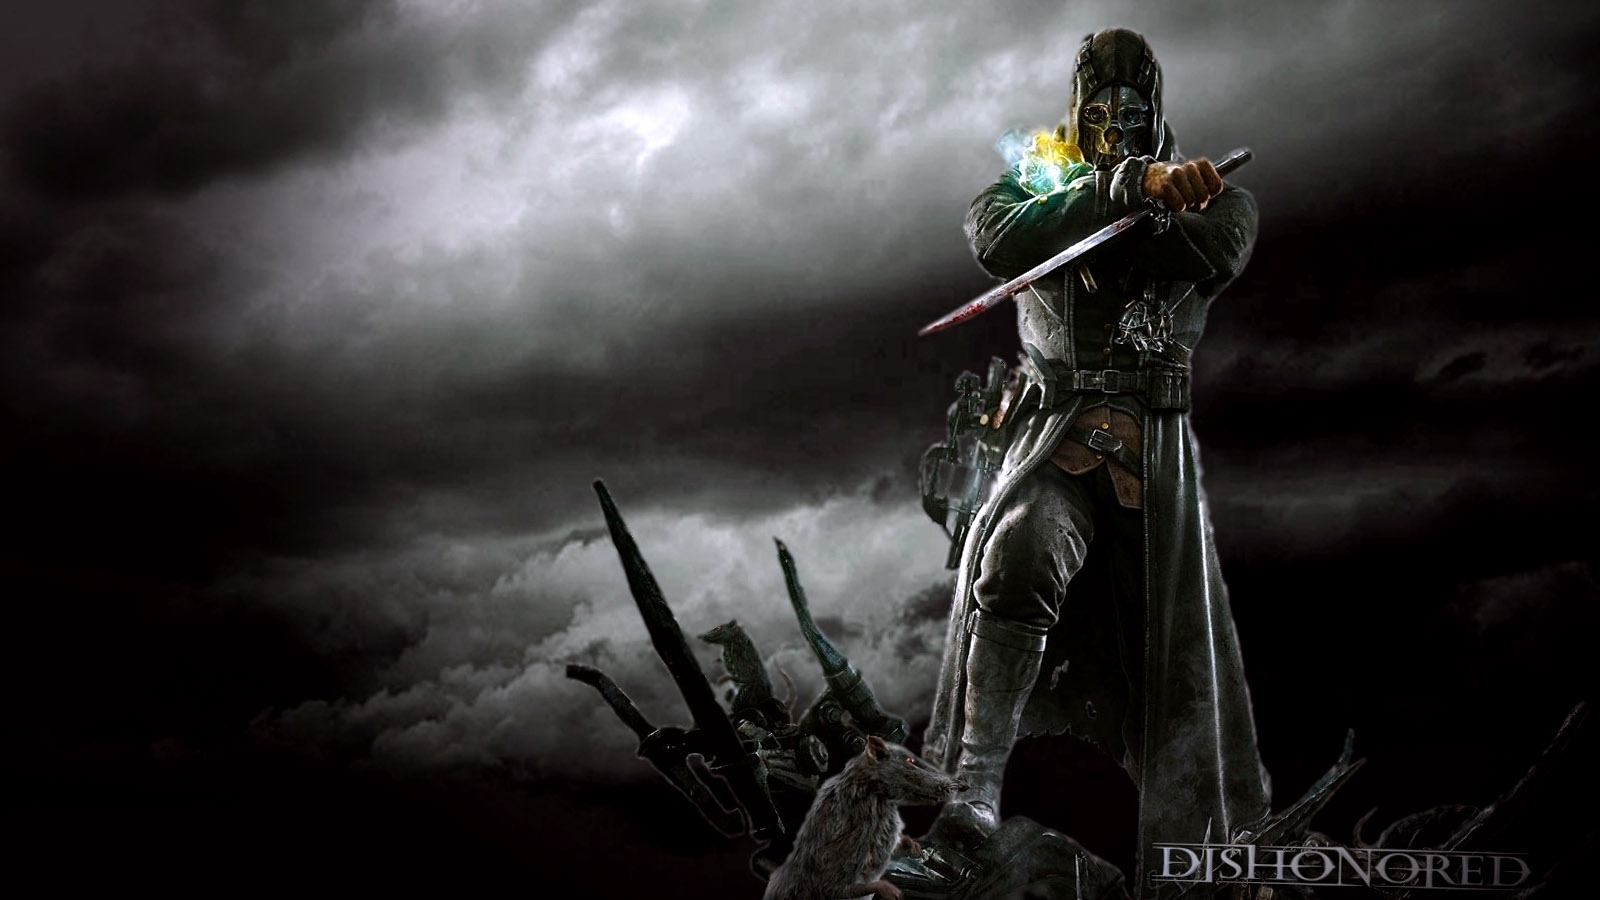 Dishonored Cool Game Picture Wallpapers HD Desktop and 1600x900